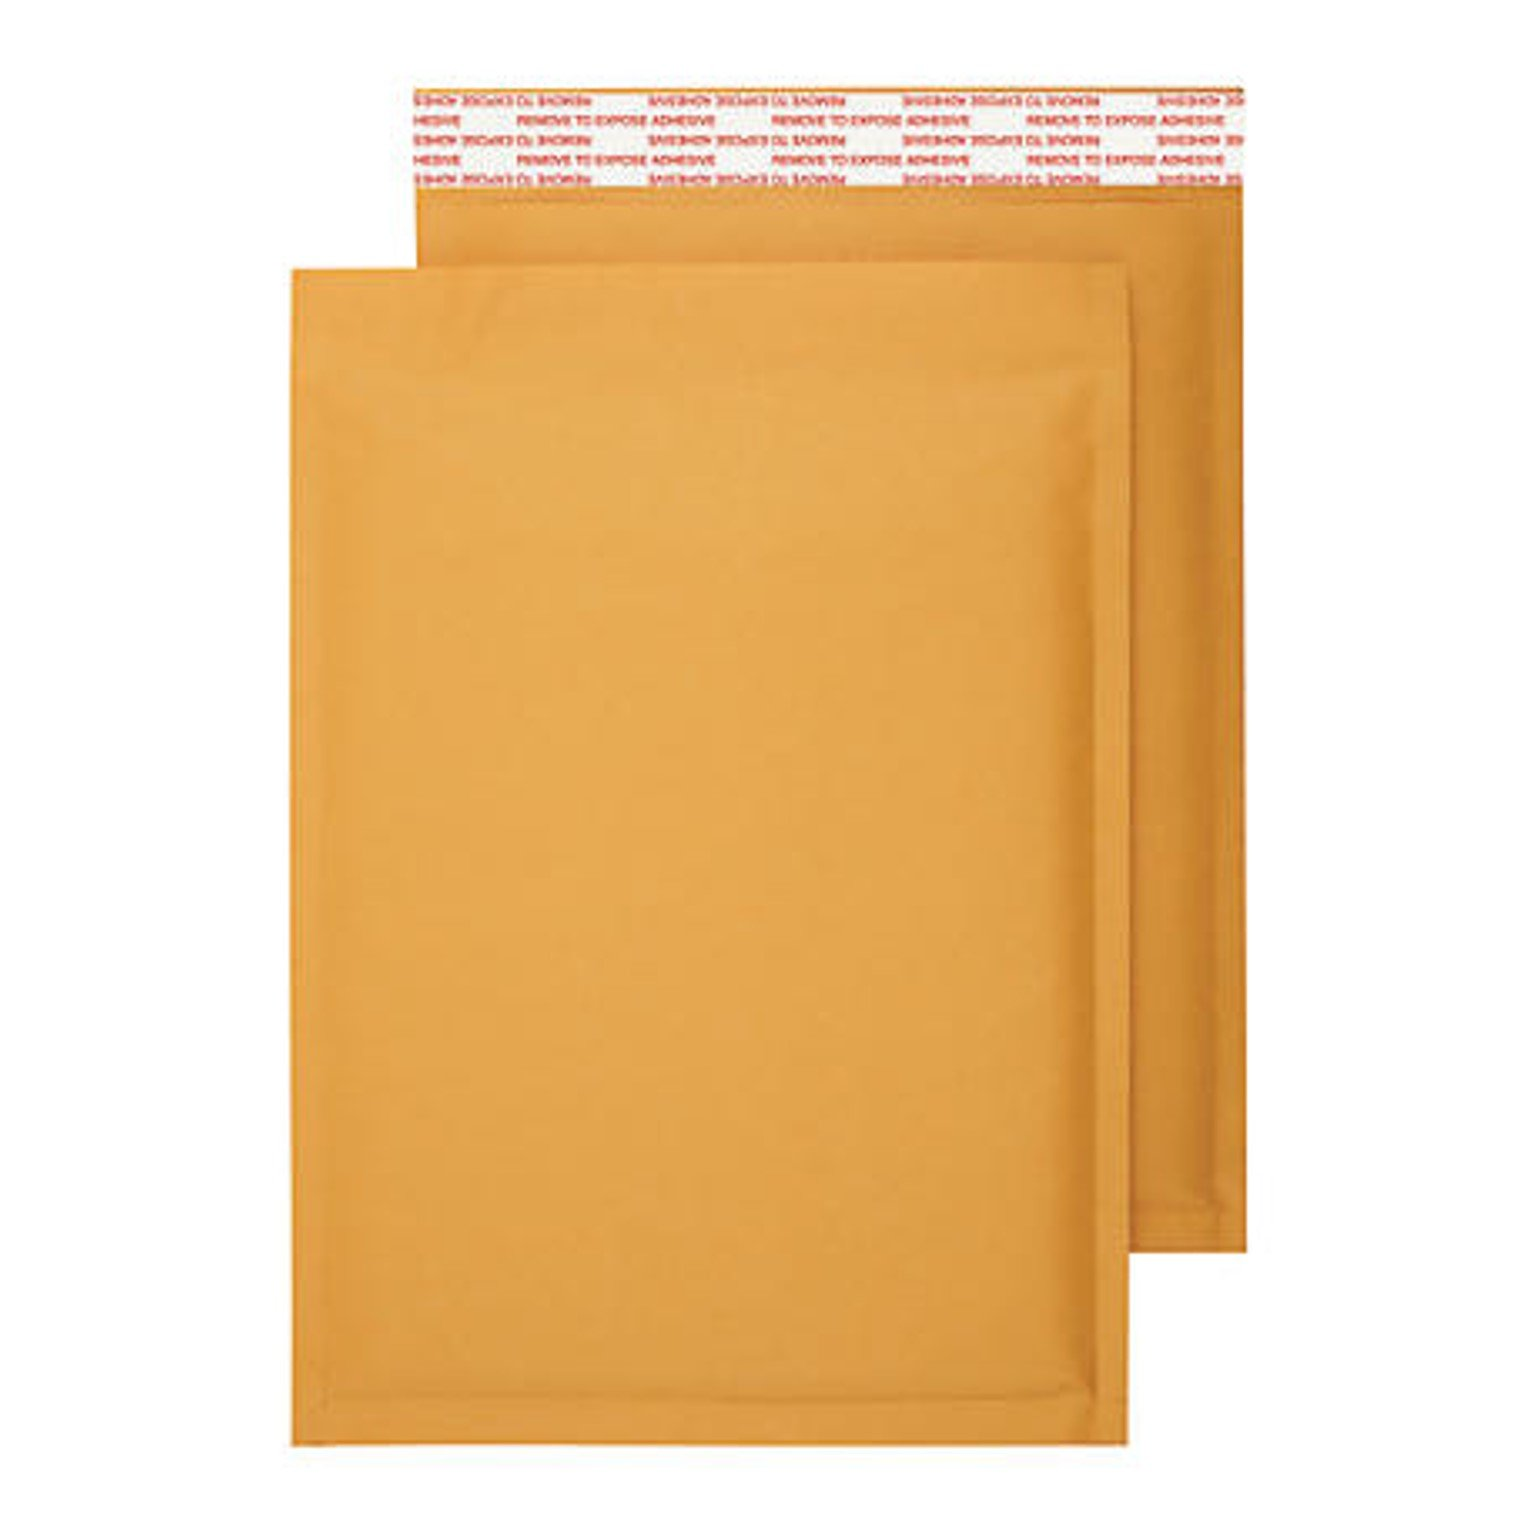 OfficeKit Kraft Bubble Mailers #0 6X10 Inches Shipping Padded Envelopes Self Seal Cushioned Mailing Envelope Bags 100 PACK by OfficeKit (Image #4)